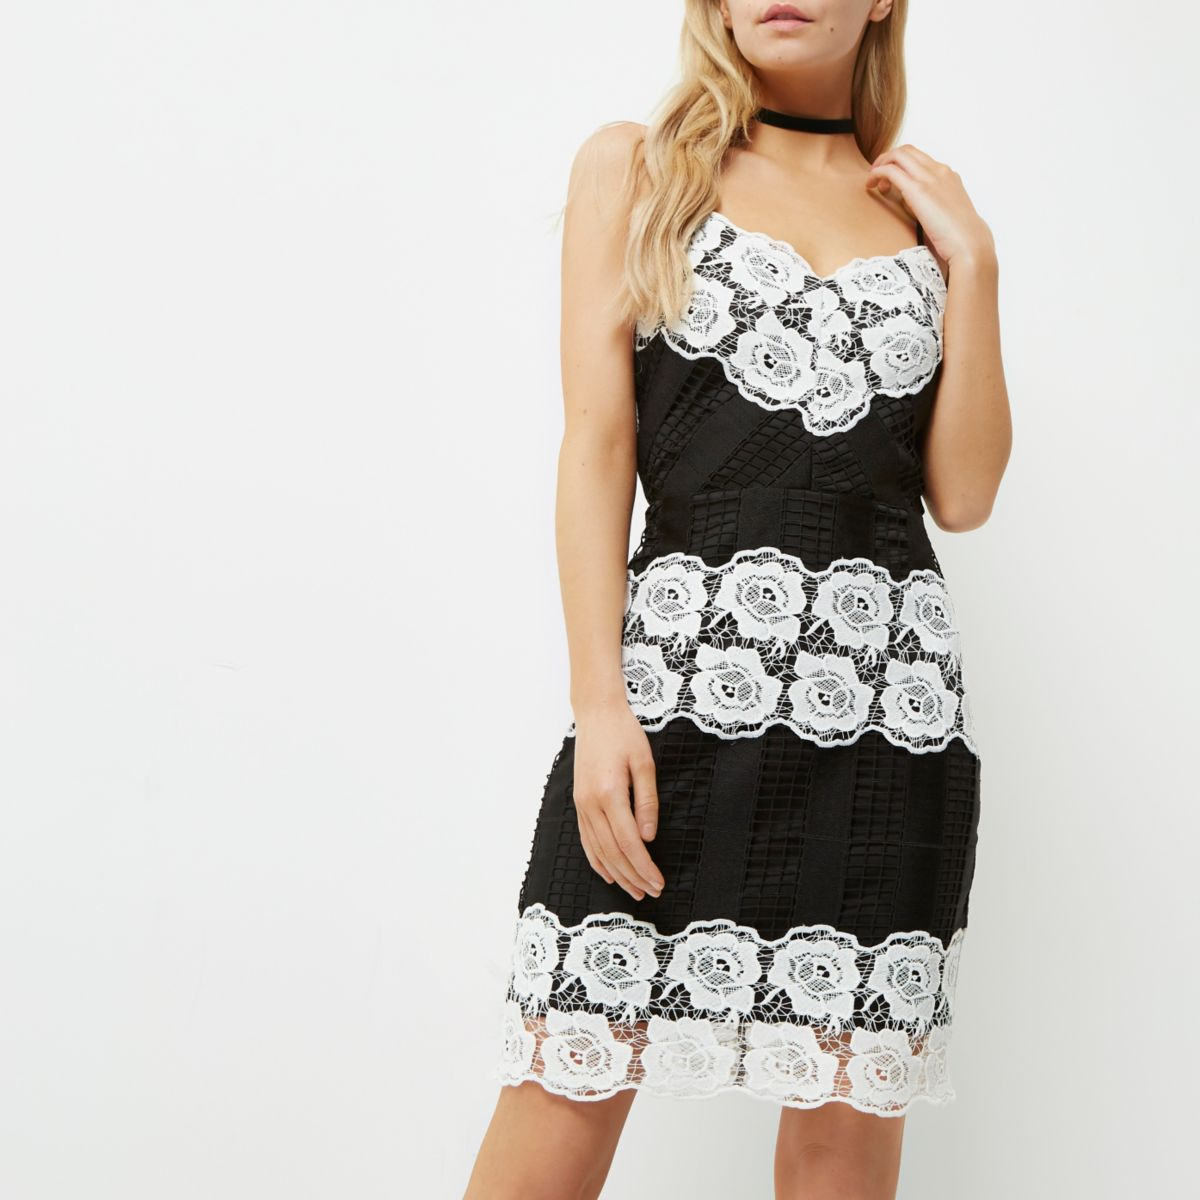 Petite black and white lace bodycon dress